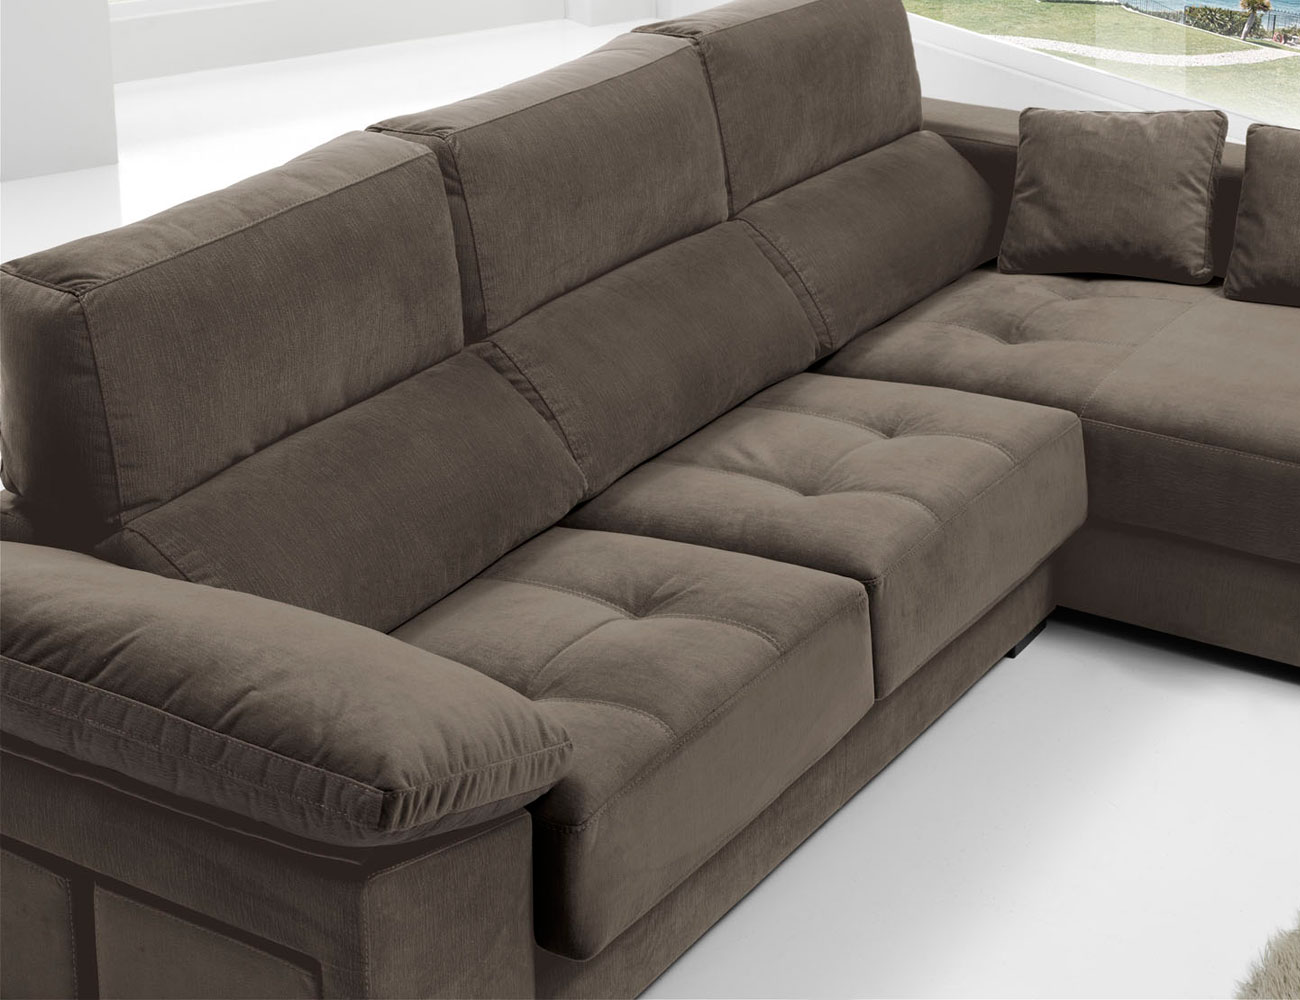 Sofa chaiselongue anti manchas bering pouf 266